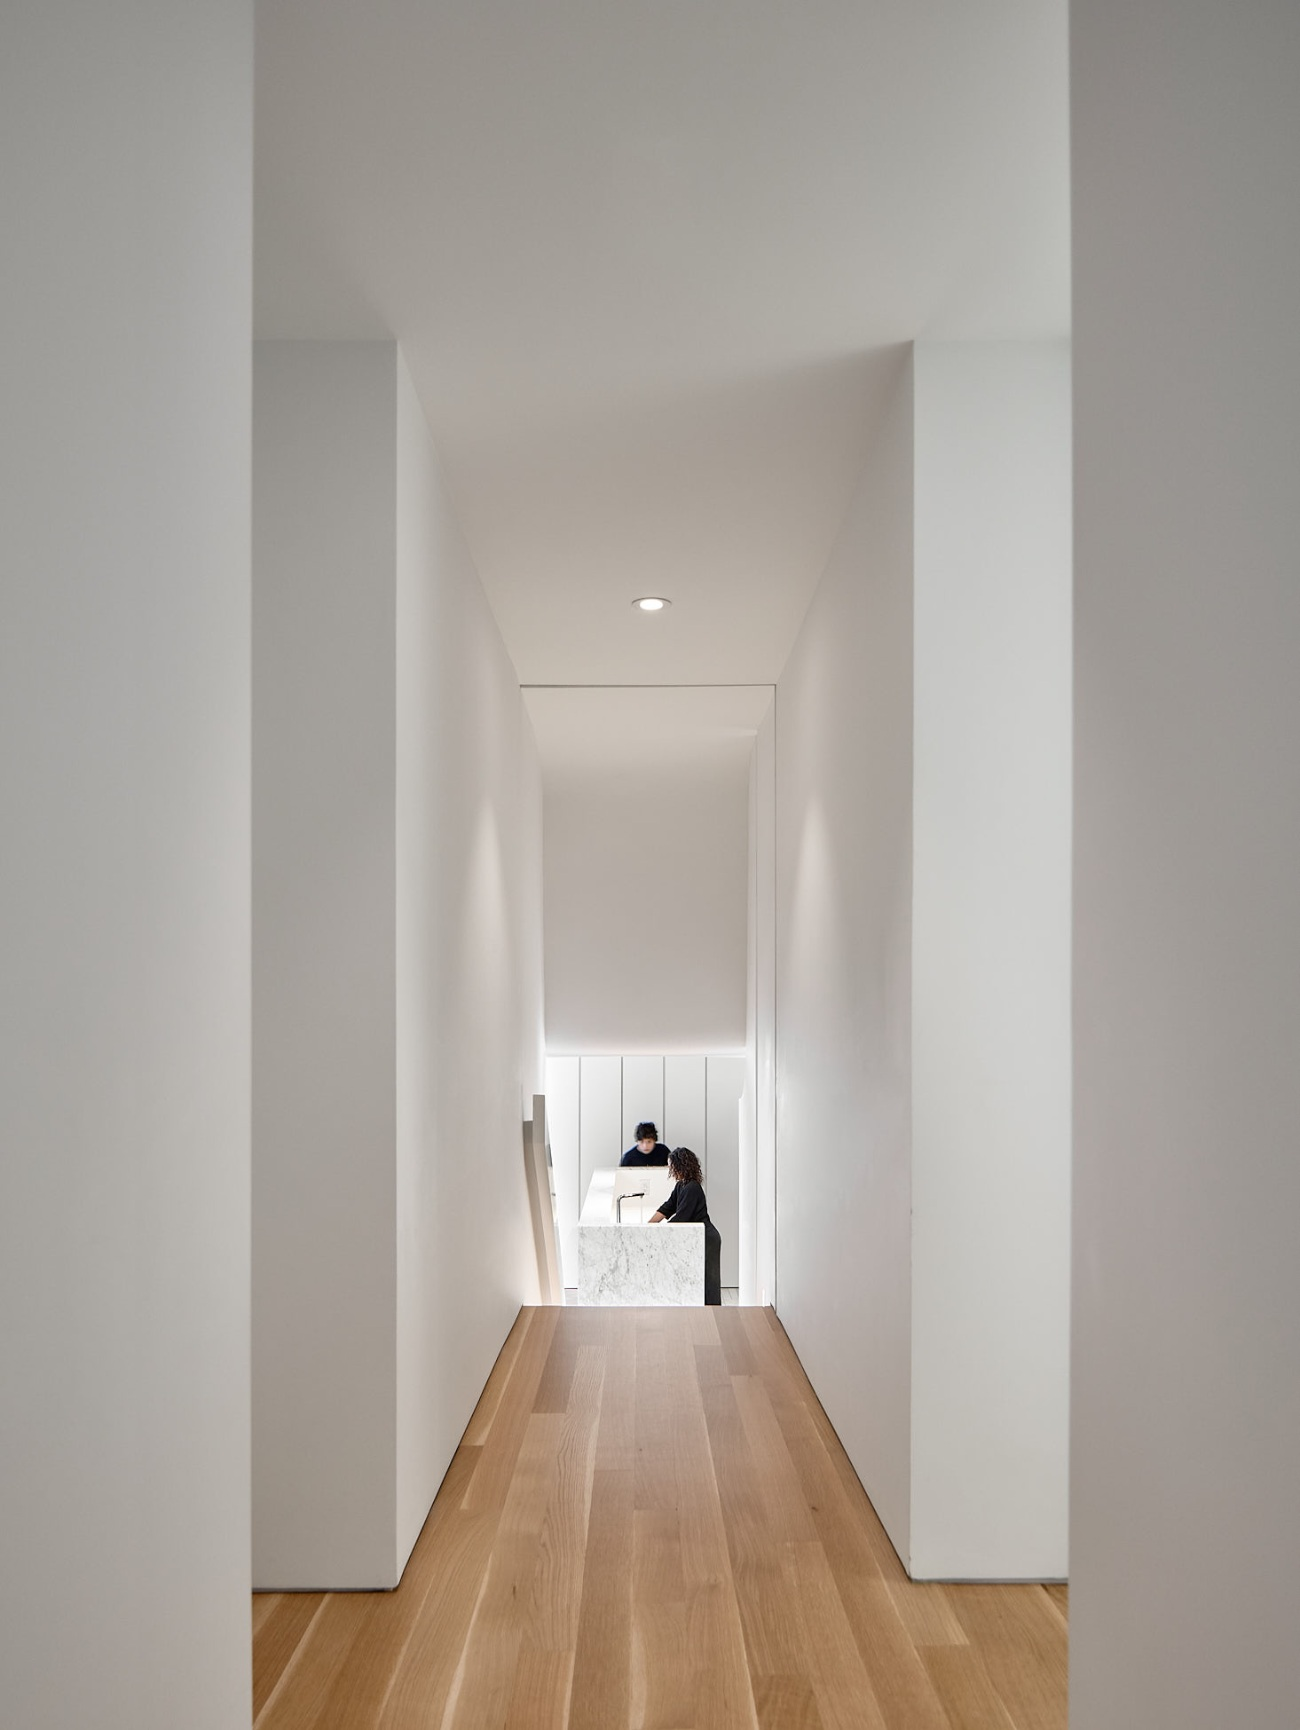 The entrances to the bedrooms and bathrooms are set back from the corridor, making for a view unencumbered by closures.